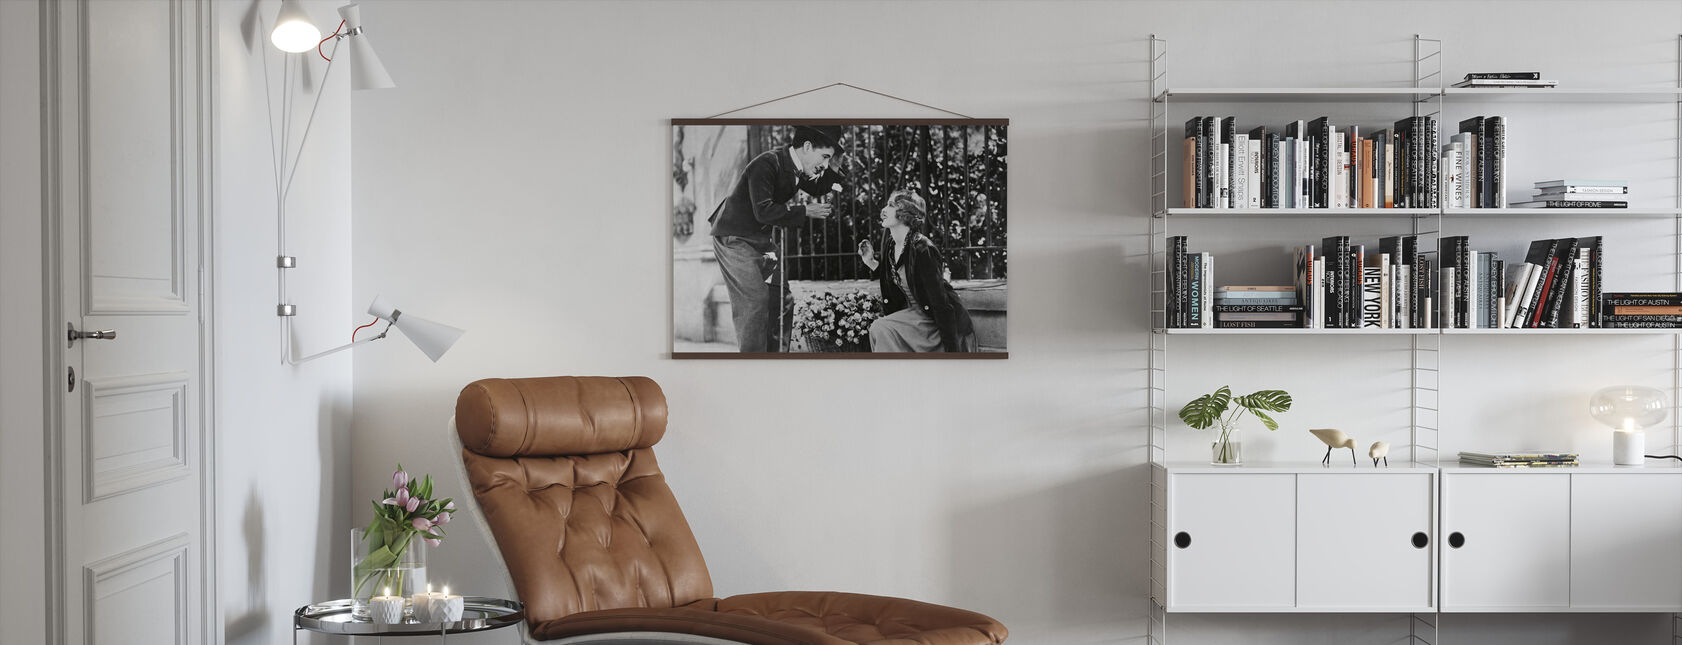 Charlie Chaplin and Virginia Cherrill in City Lights - Poster - Living Room